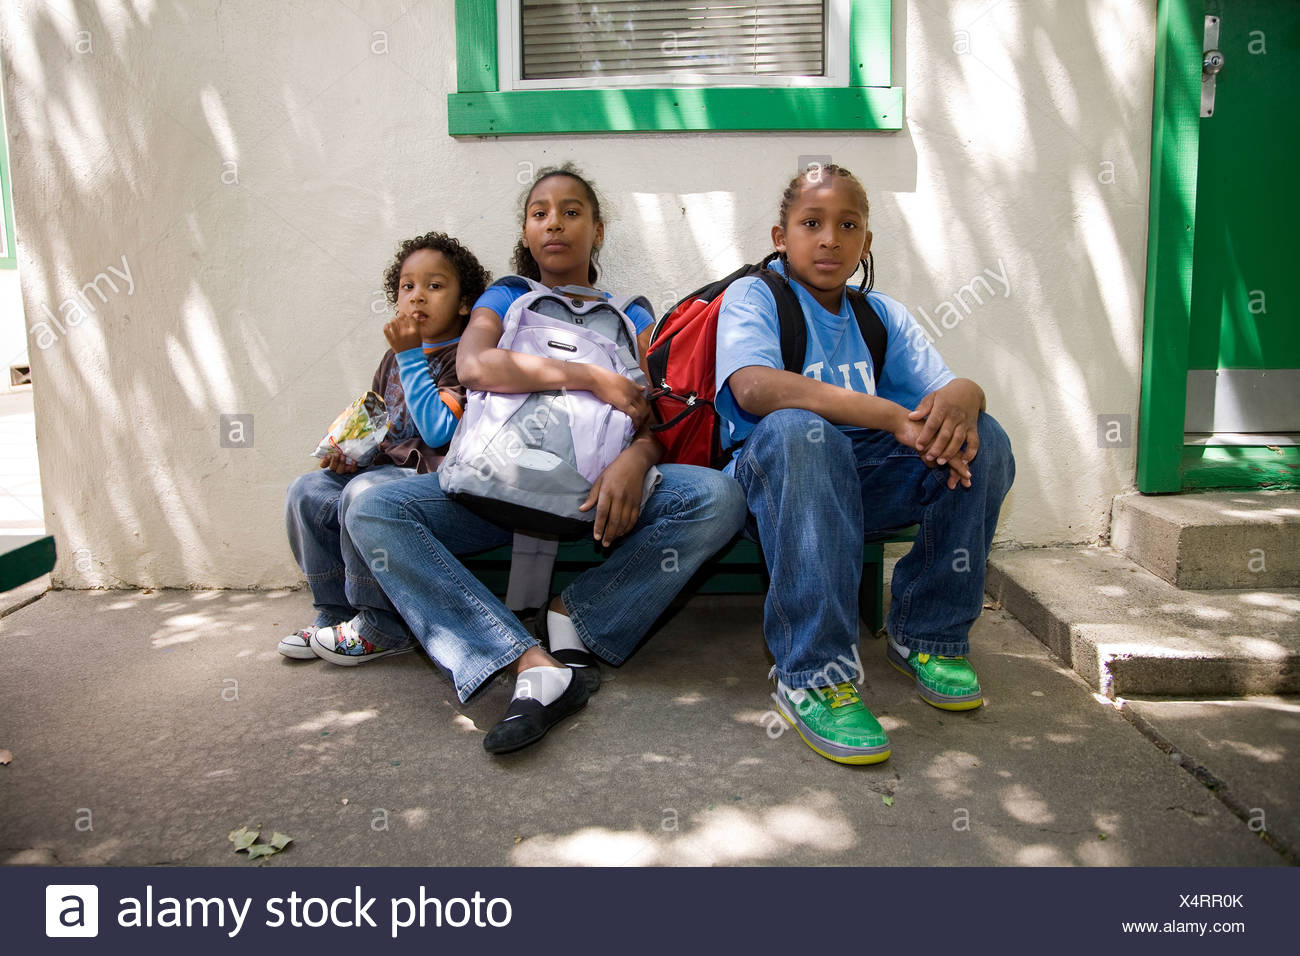 Selena Pina, a homeless mother of four, with her children at the Mustard Seed School at Loaves and Fishes in Sacramento, CA. Stock Photo